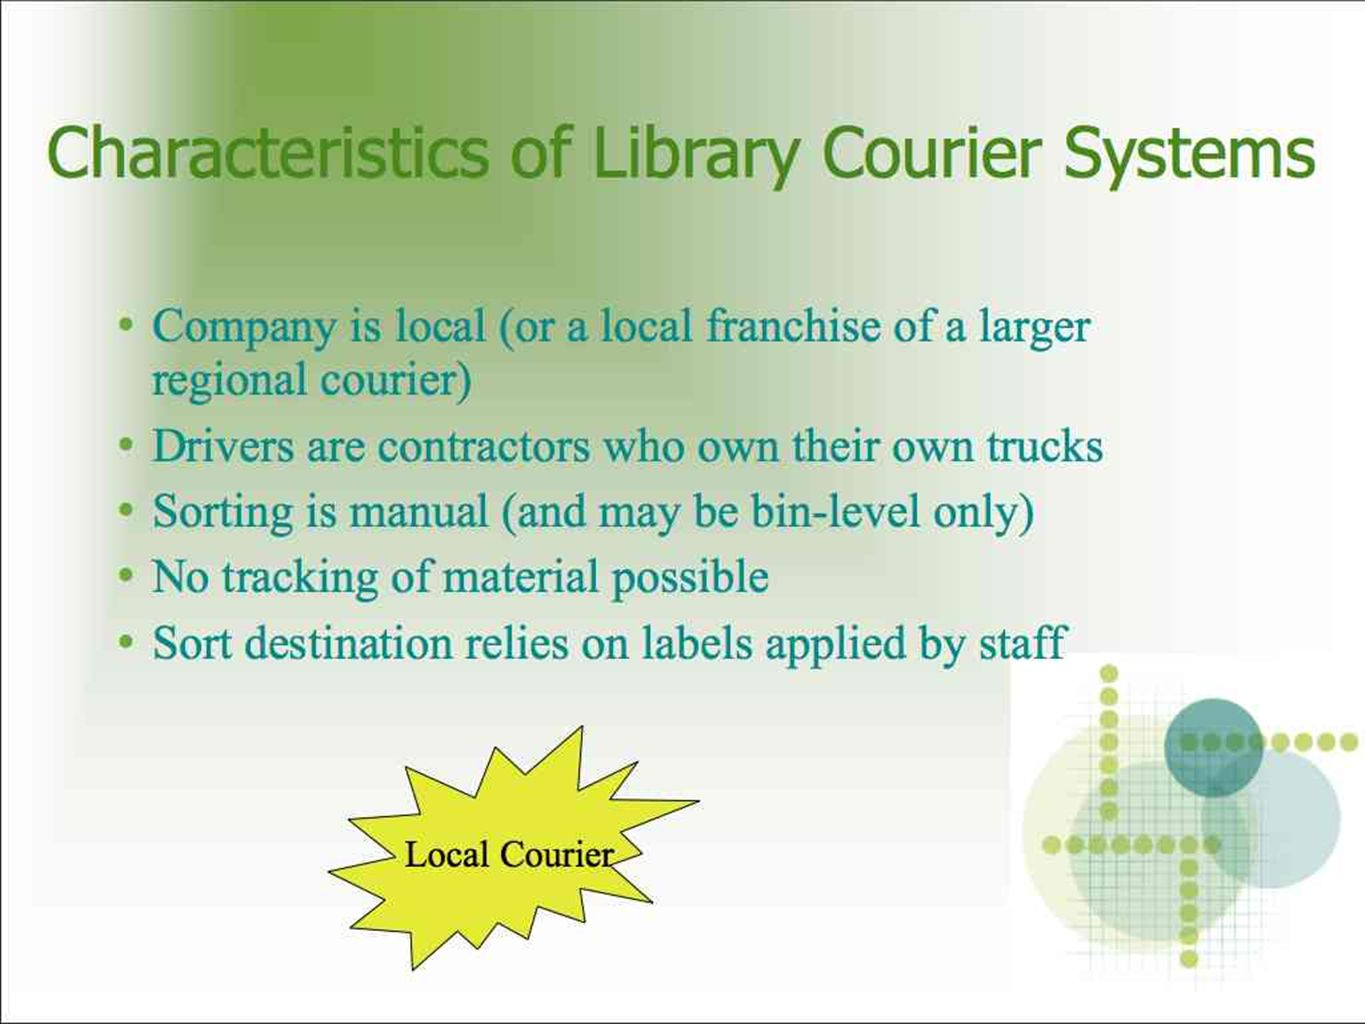 Characteristics of Library Courier Systems Company is local (or a local franchise of a larger regional courier) Drivers are contractors who own their own trucks Sorting is manual (and may be bin-level only) No tracking of material possible Sort destination relies on labels applied by staff Local Courier